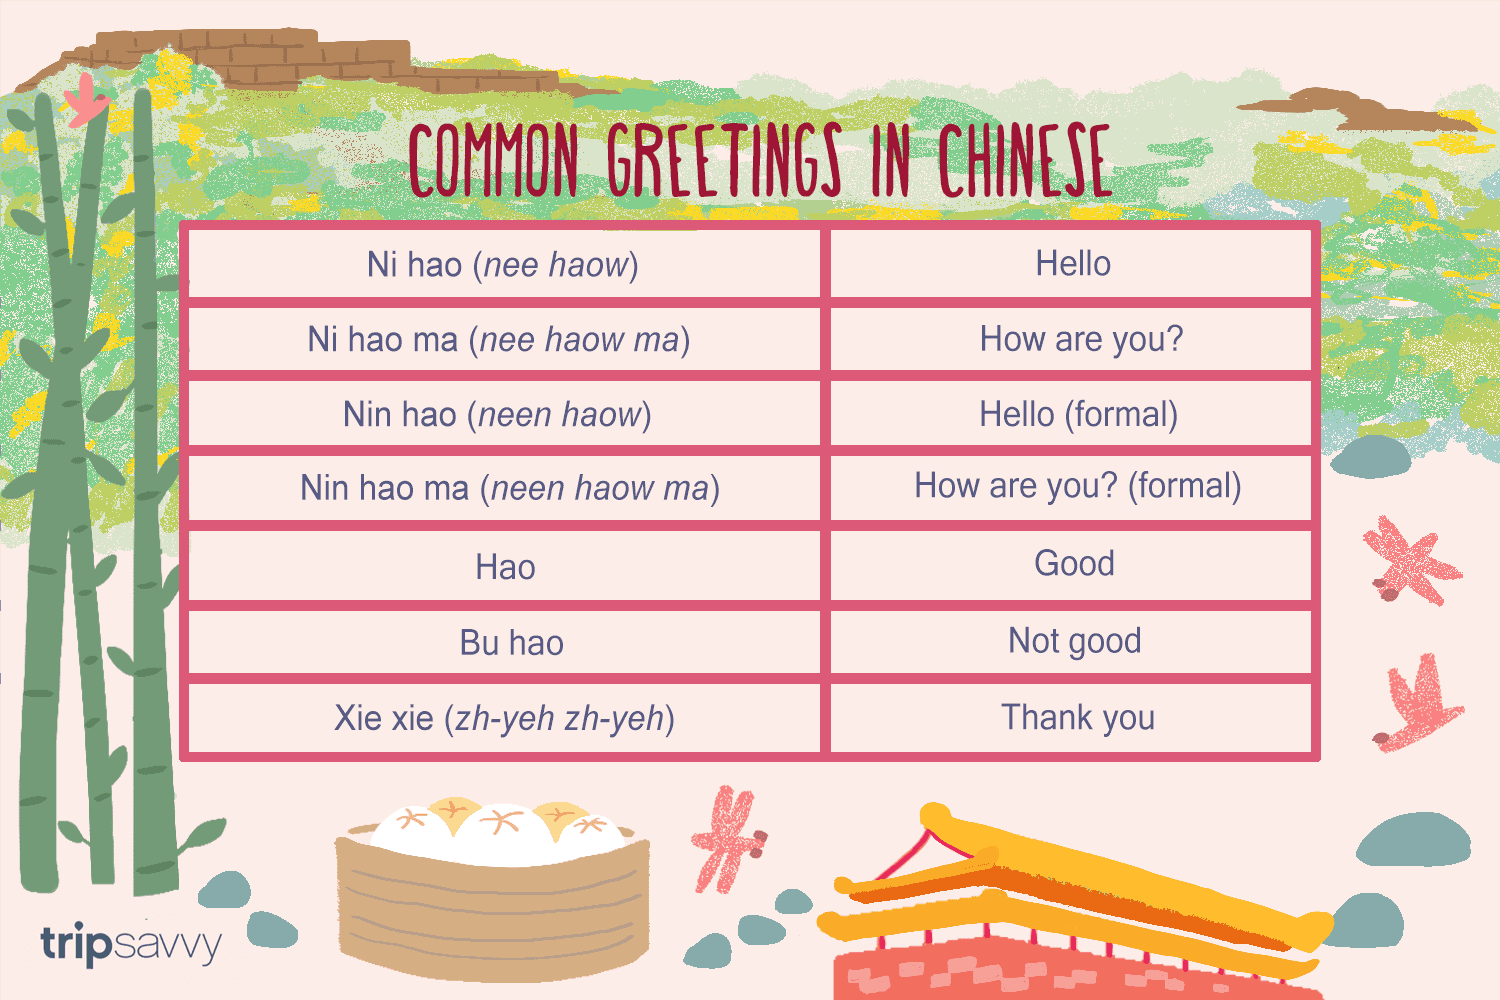 How to Say Hello in Chinese (Mandarin and Cantonese)